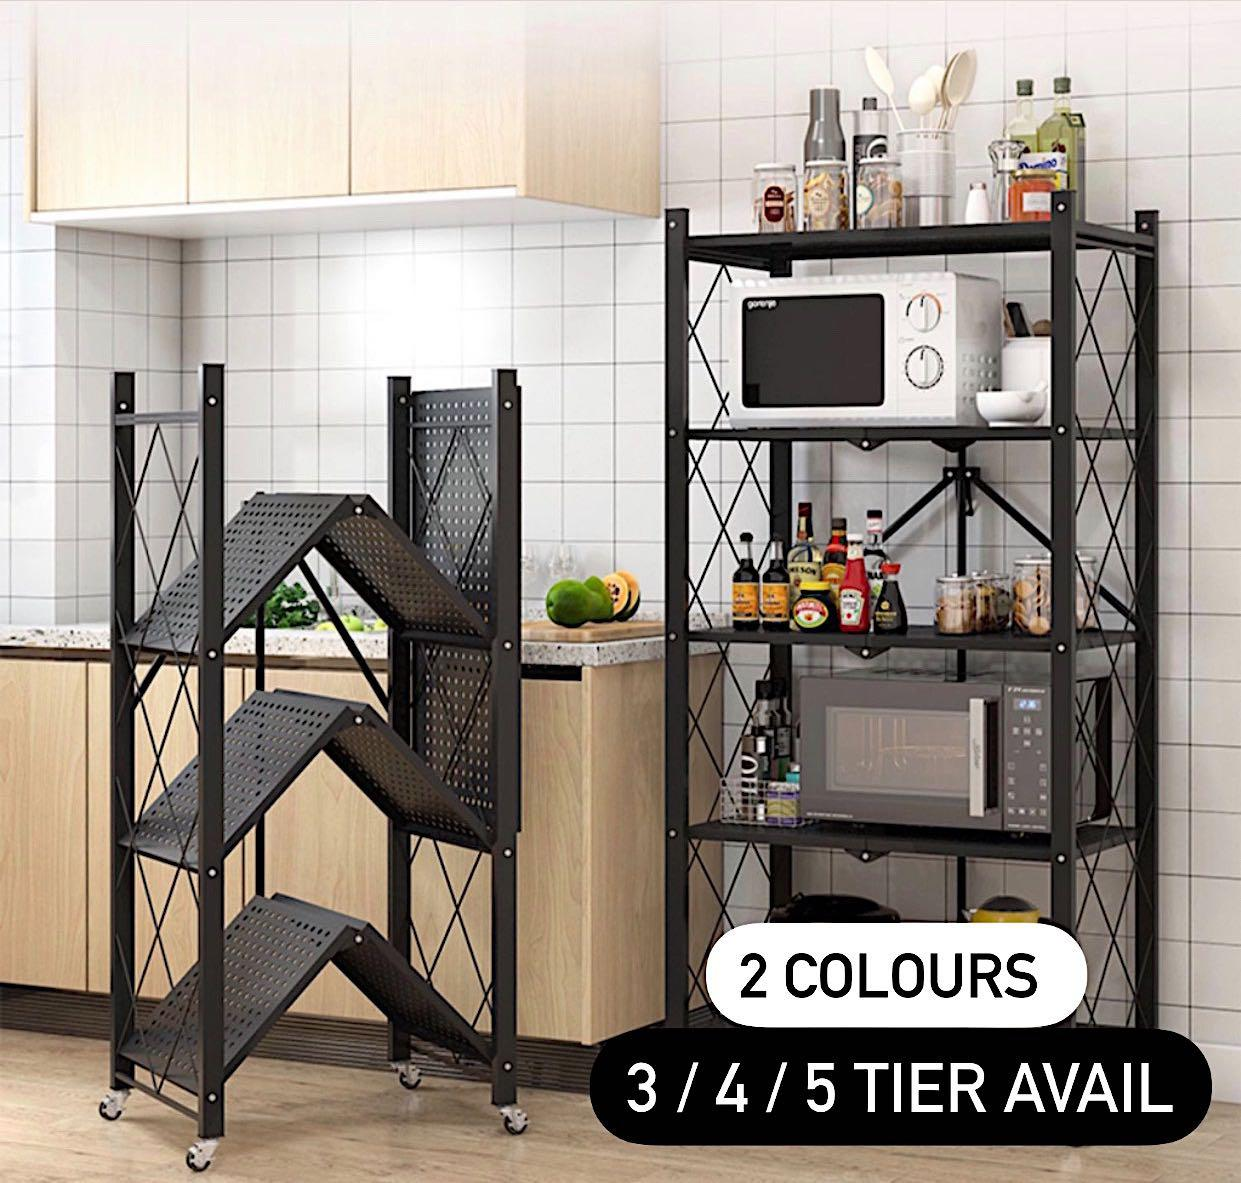 Free Courier Multi Purpose Kitchen Storage Rack Foldable Storeroom Movable Trolley Heavy Duty Furniture Shelves Drawers On Carousell